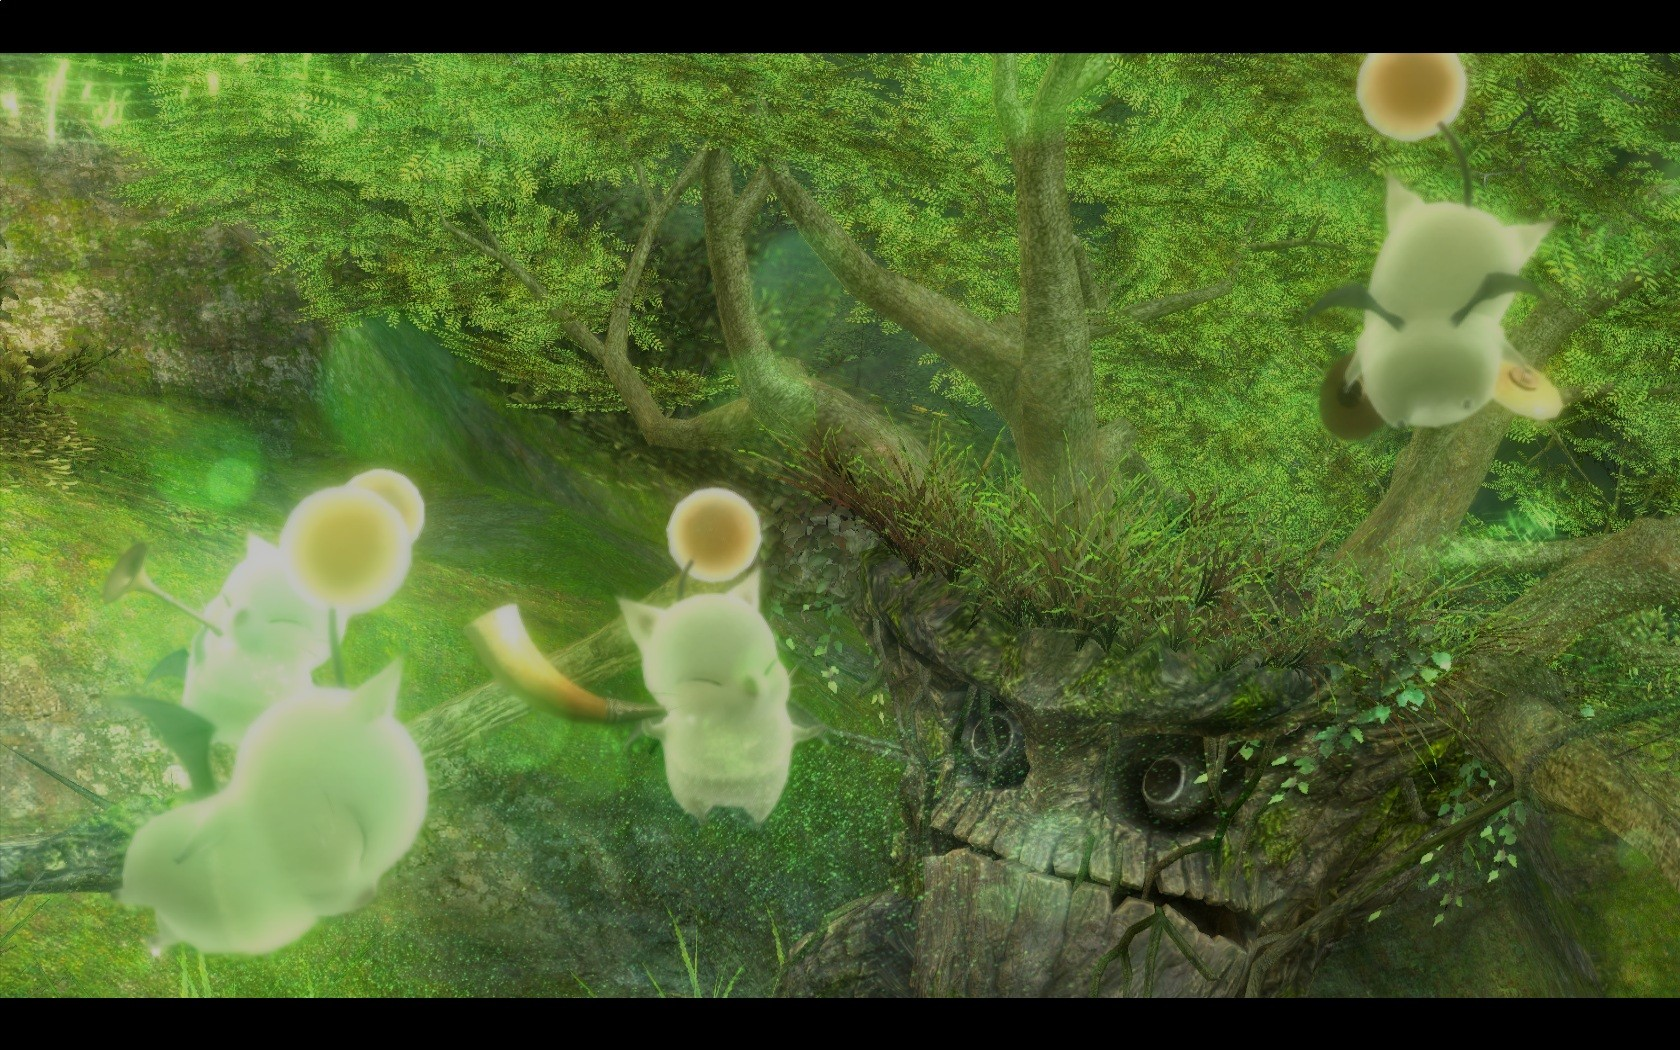 Final Fantasy XIV: A Realm Reborn - Moogles distracting treant